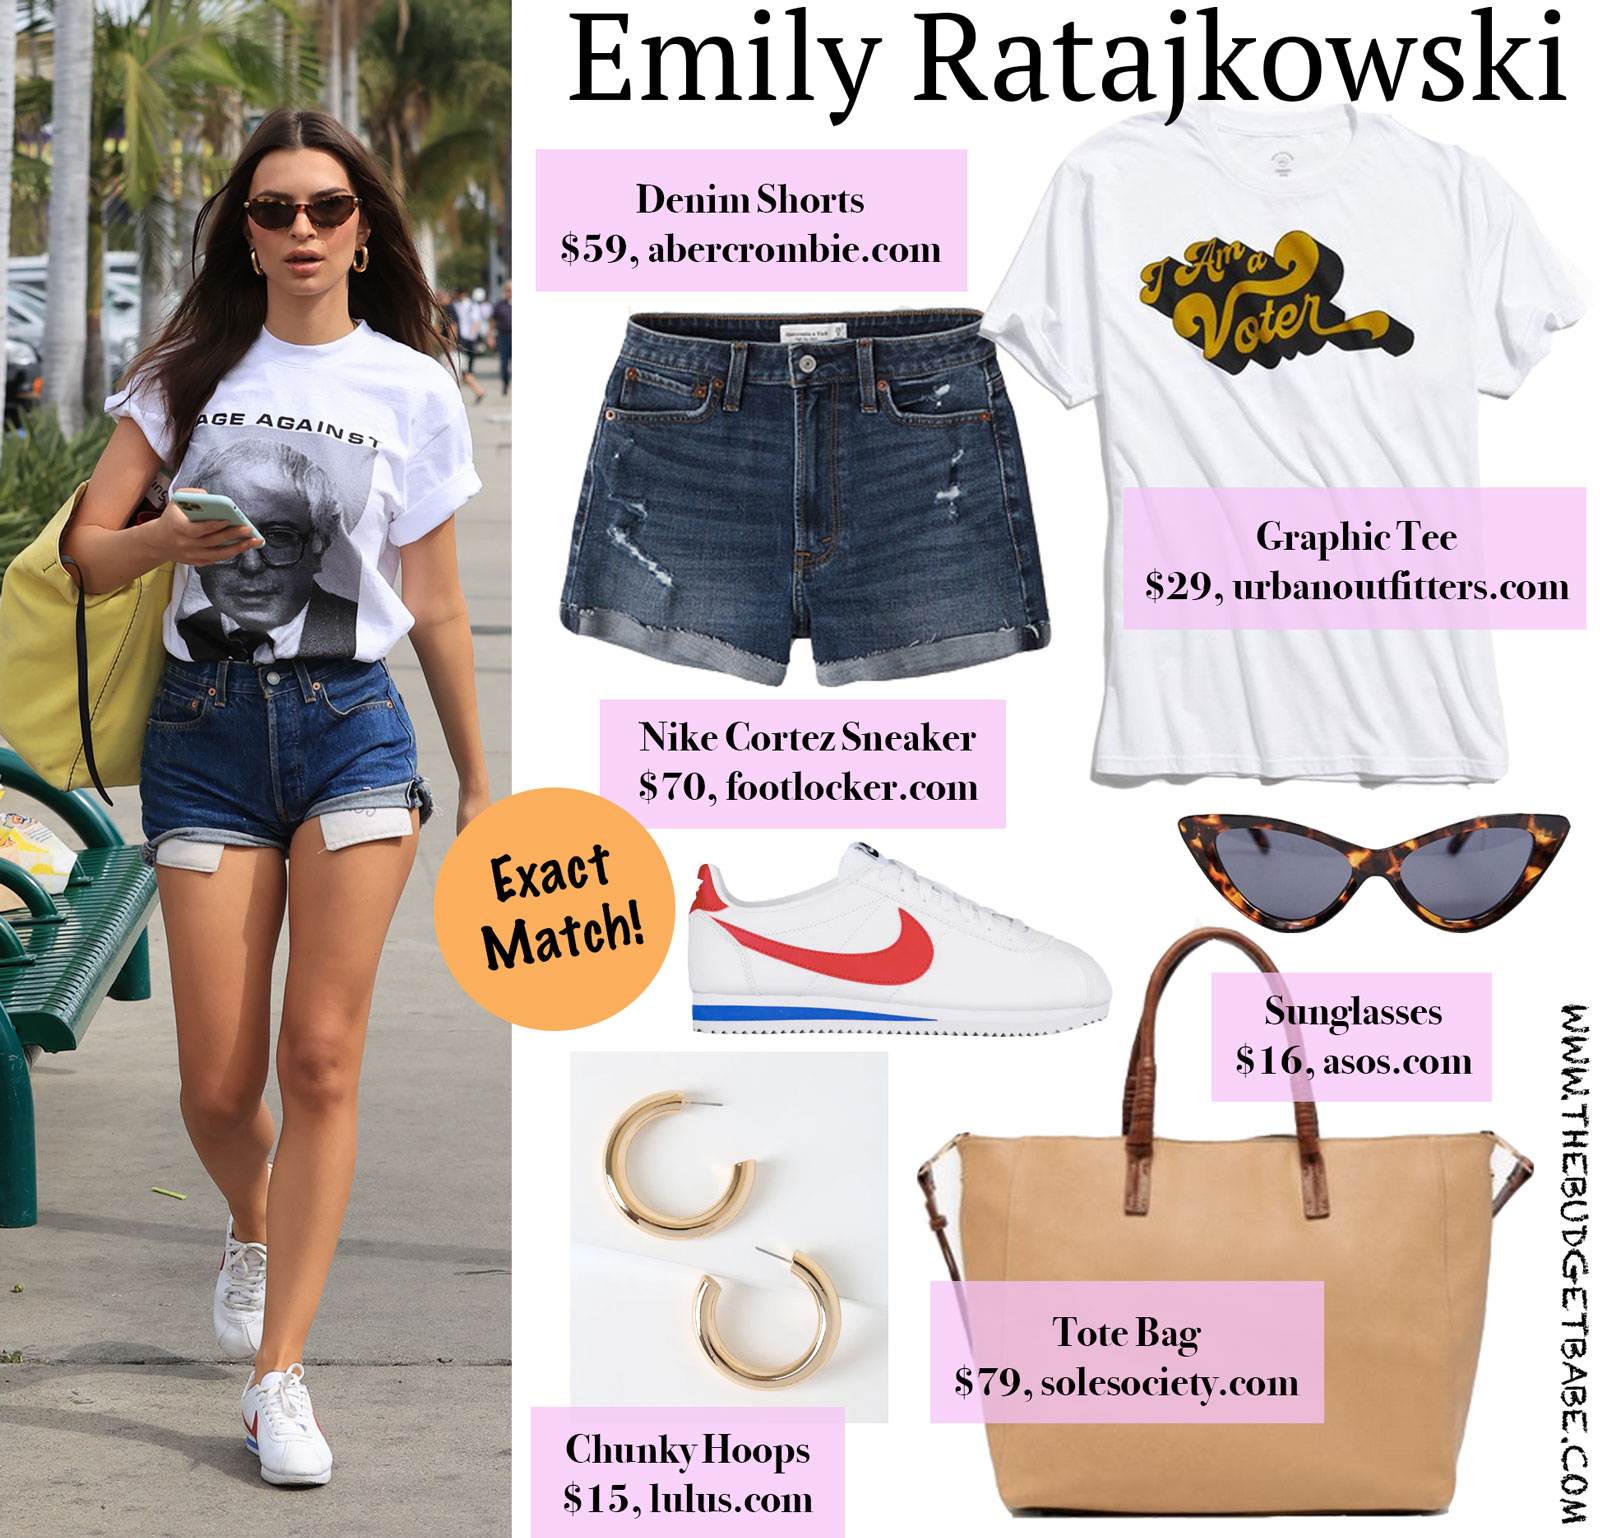 Emily Ratajkowski Graphic Tee and Nikes Look for Less